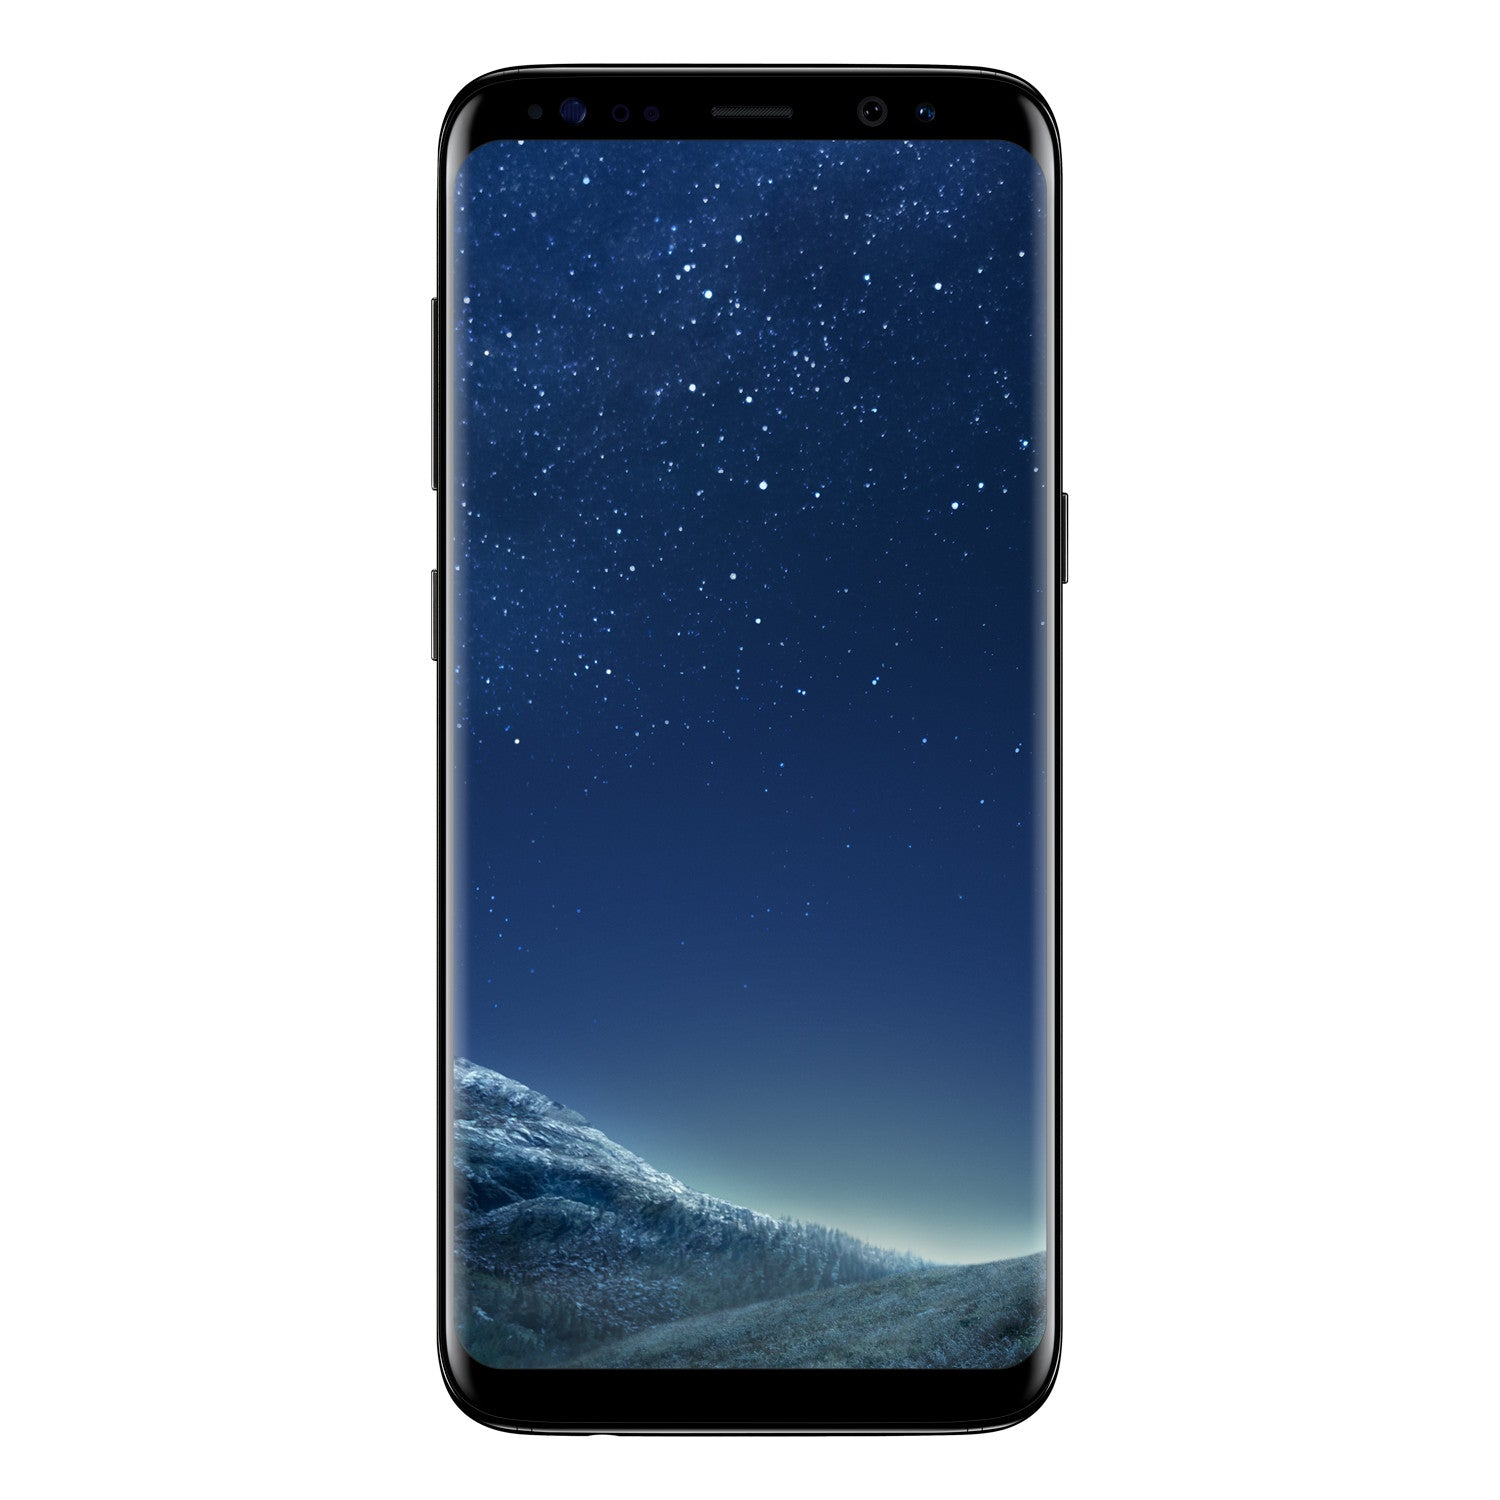 "Samsung Galaxy S8 5.8"" Android Smartphone LTE for Virgin Mobile"